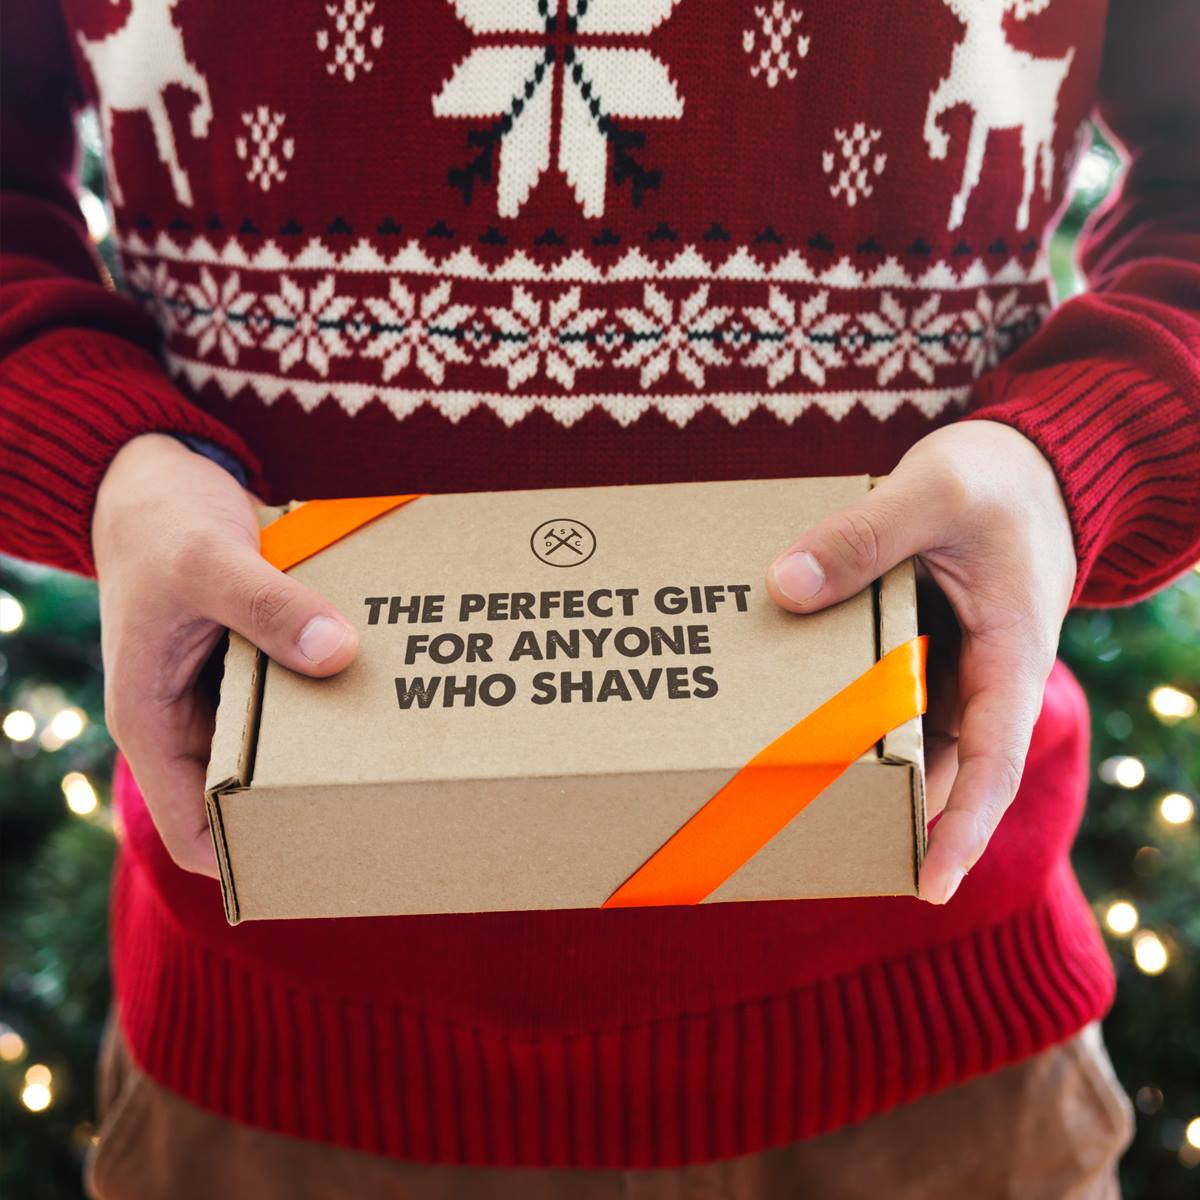 Get a Dollar Shave Club starter kit for just $5 – someone with a Christmas sweater holding the box